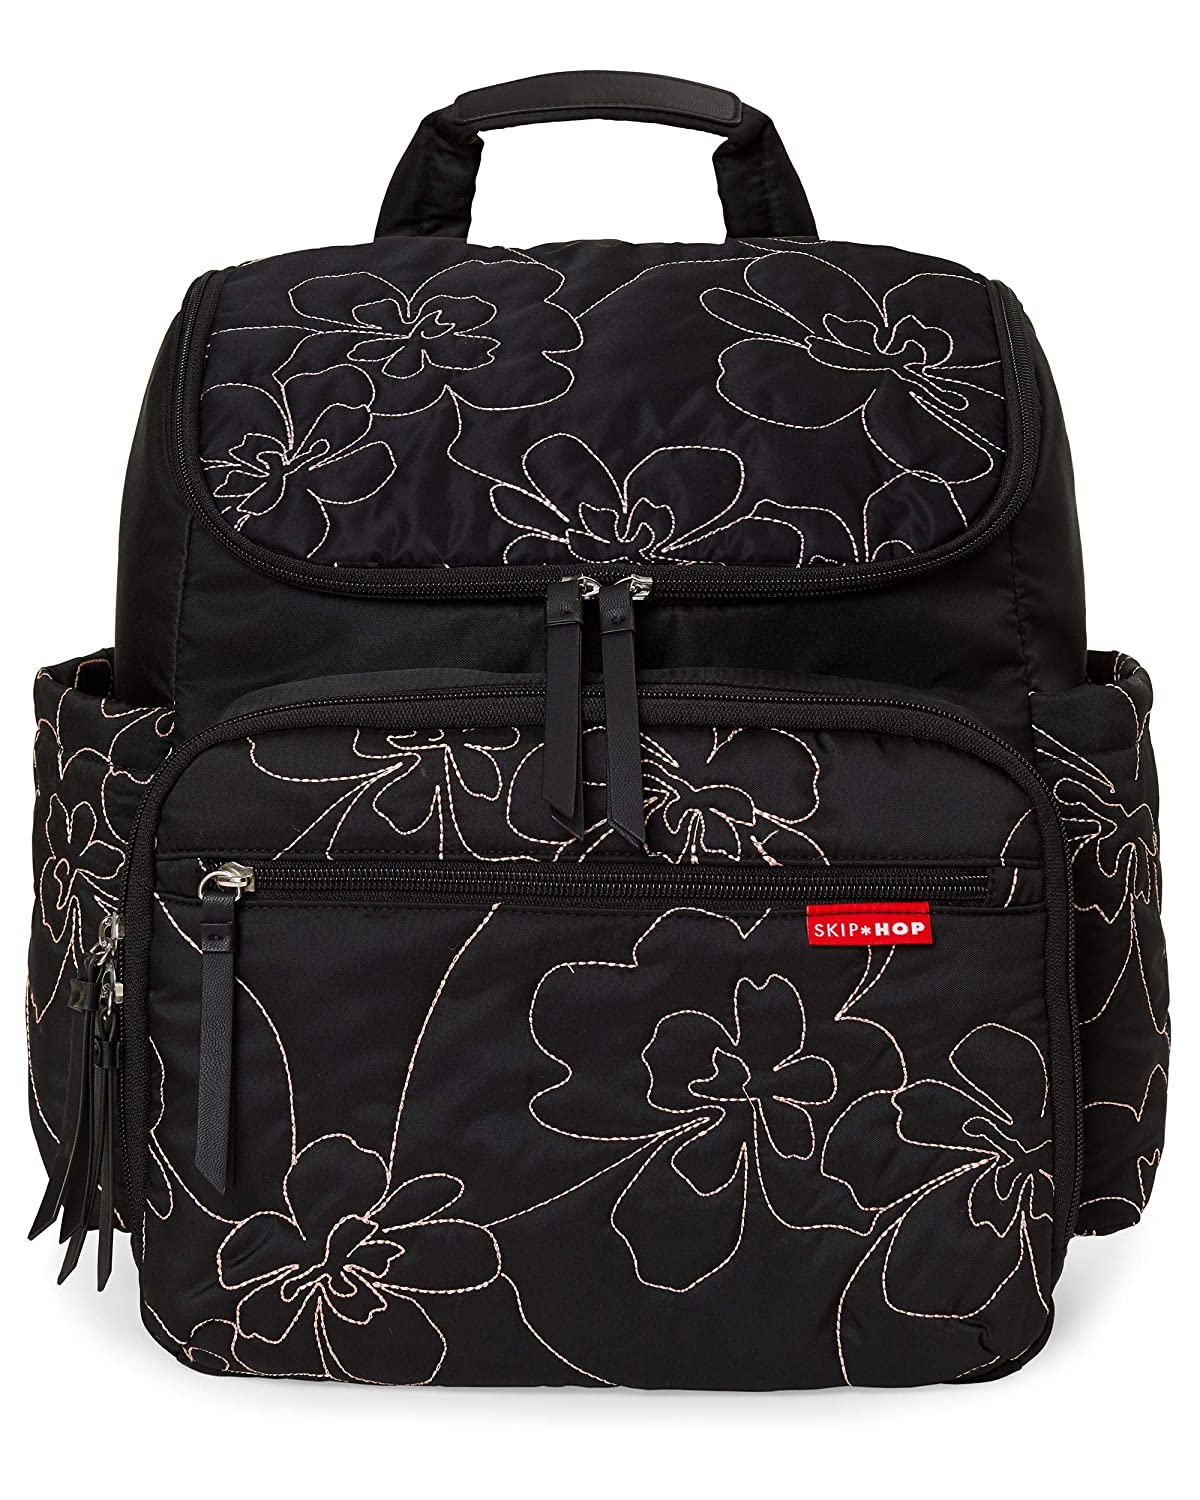 Skip Hop Diaper Bag Backpack: Forma, Multi-Function Baby Travel Bag with Changing Pad & Stroller Attachment, Black Floral